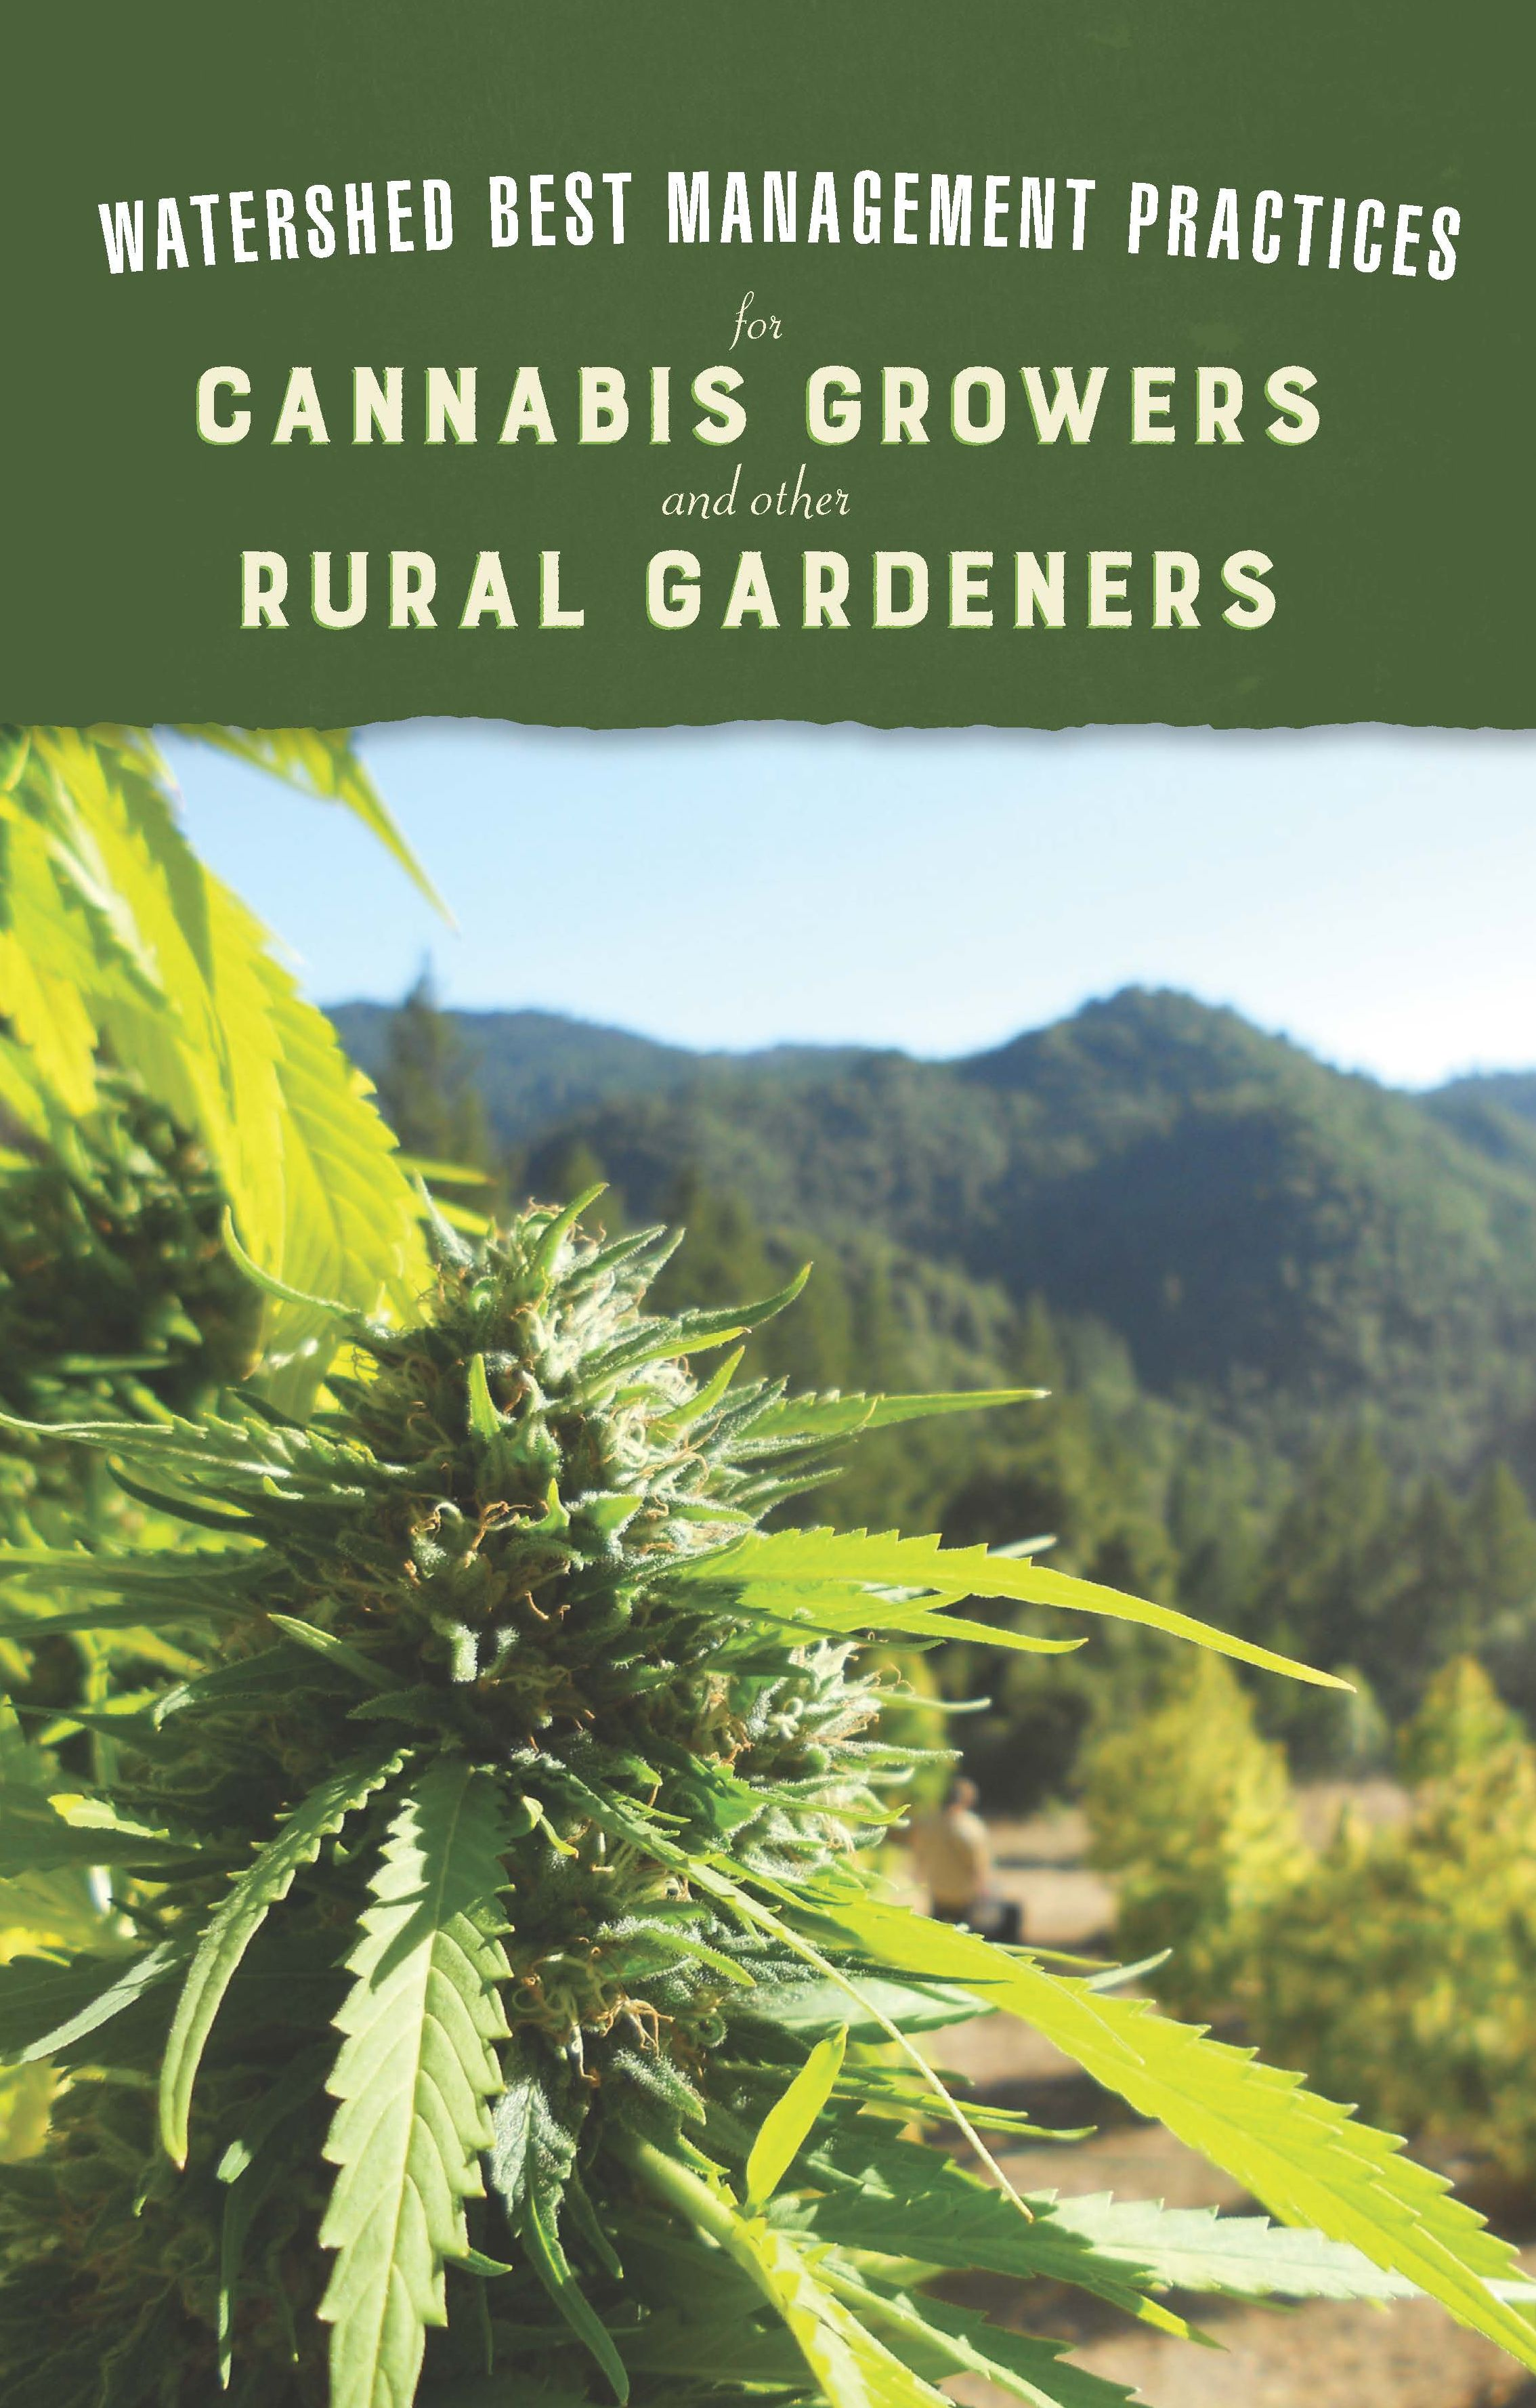 Watershed Best Management Practices for Cannabis Growers and Other Rural Gardeners Download Now!